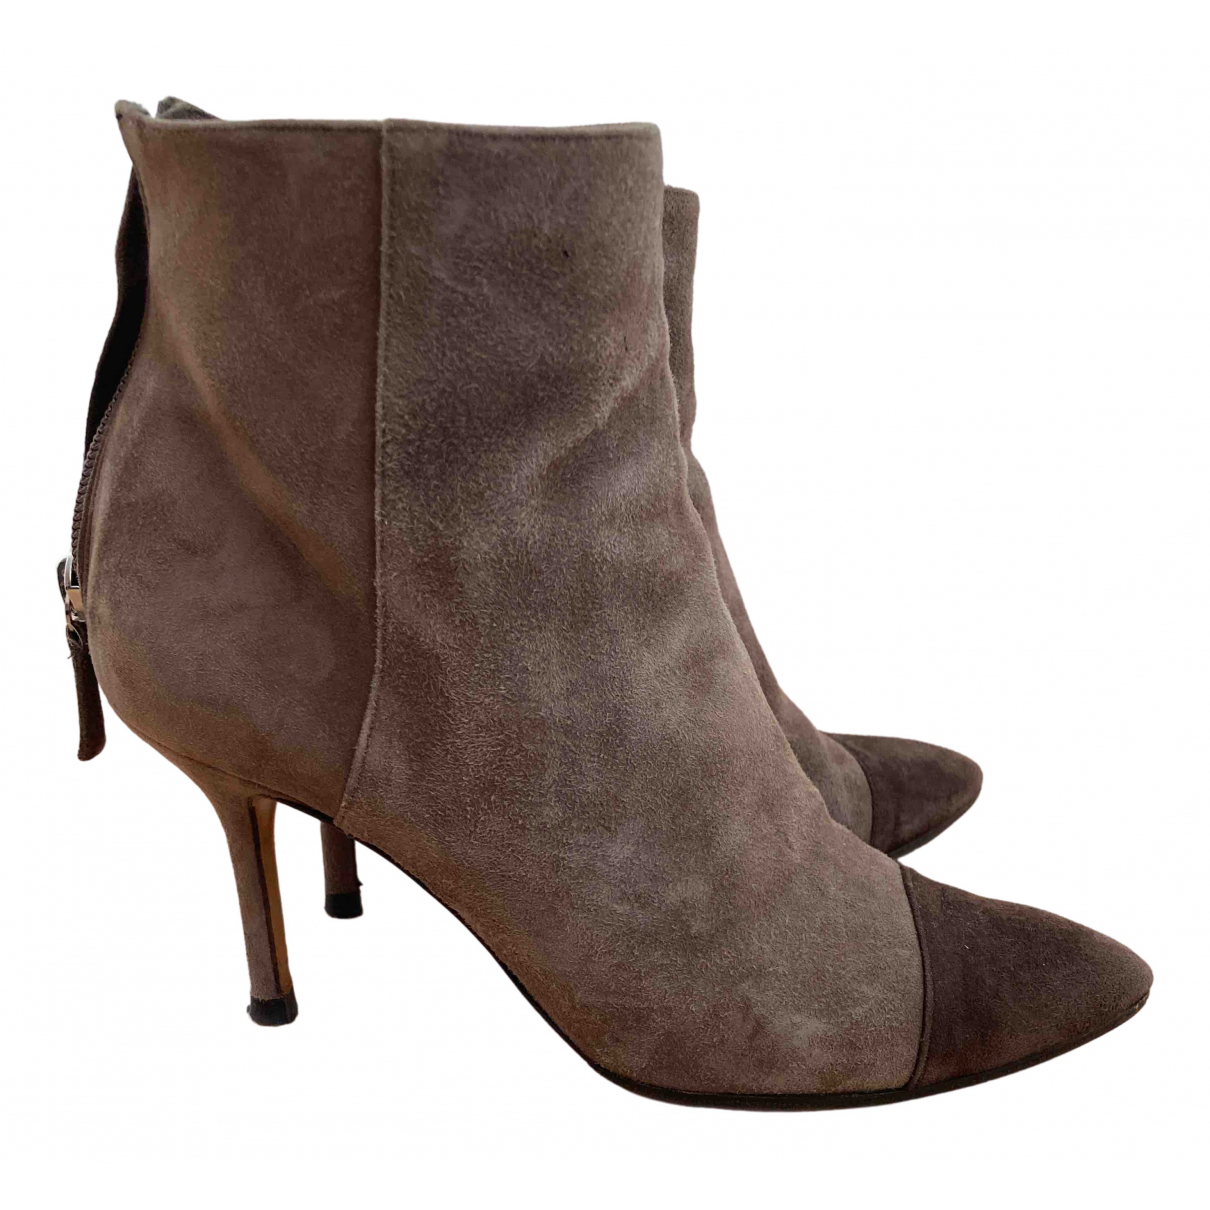 Pollini N Brown Suede Boots for Women 35 EU